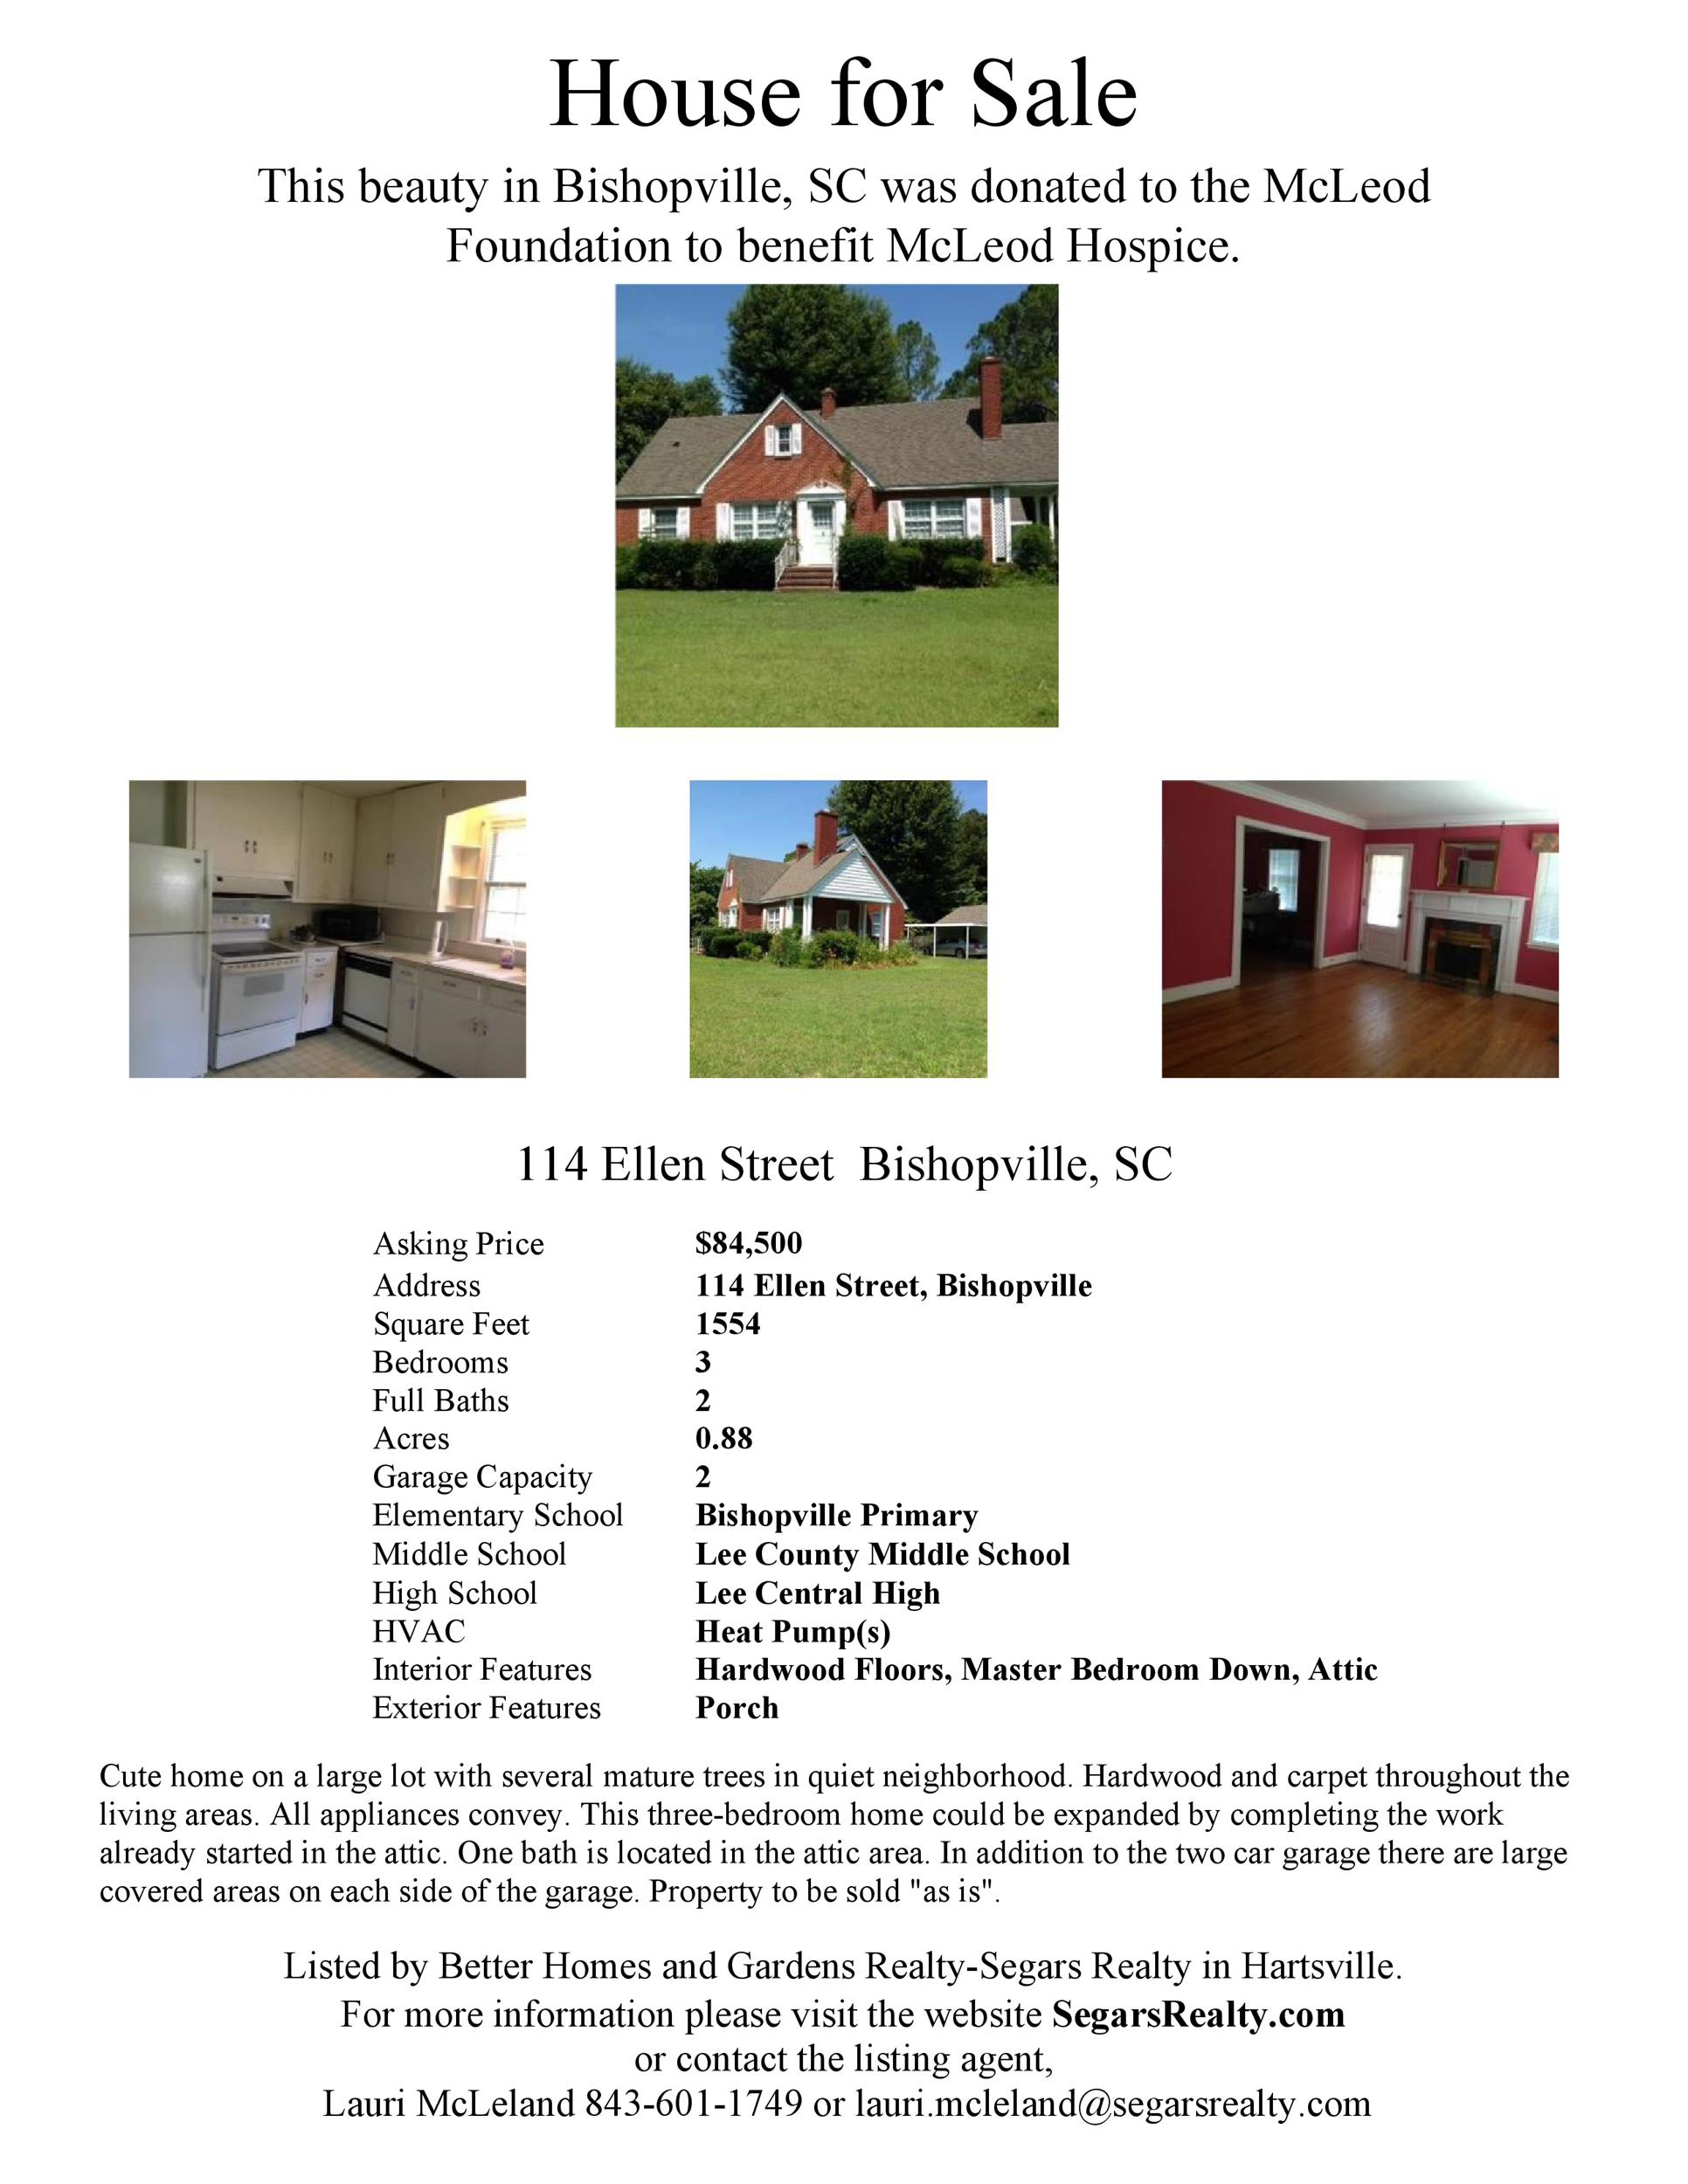 Free house for sale flyer 01